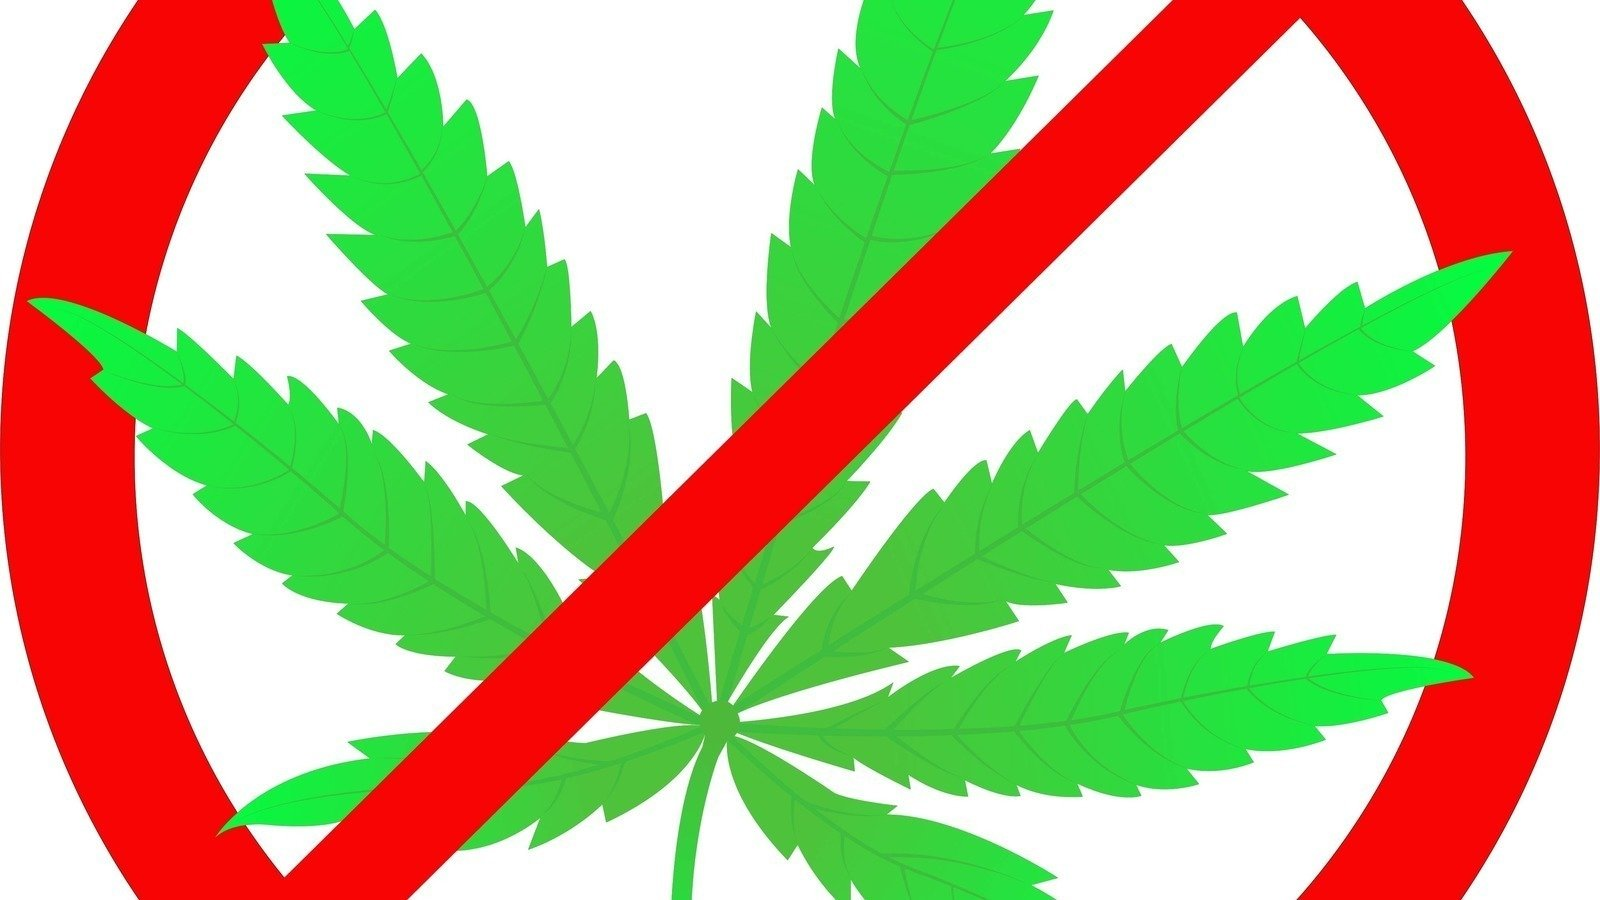 Weed leaf clipart 1600x900 image free download Petition · Do NOT give this farm a Conditional Use Permit to ... image free download